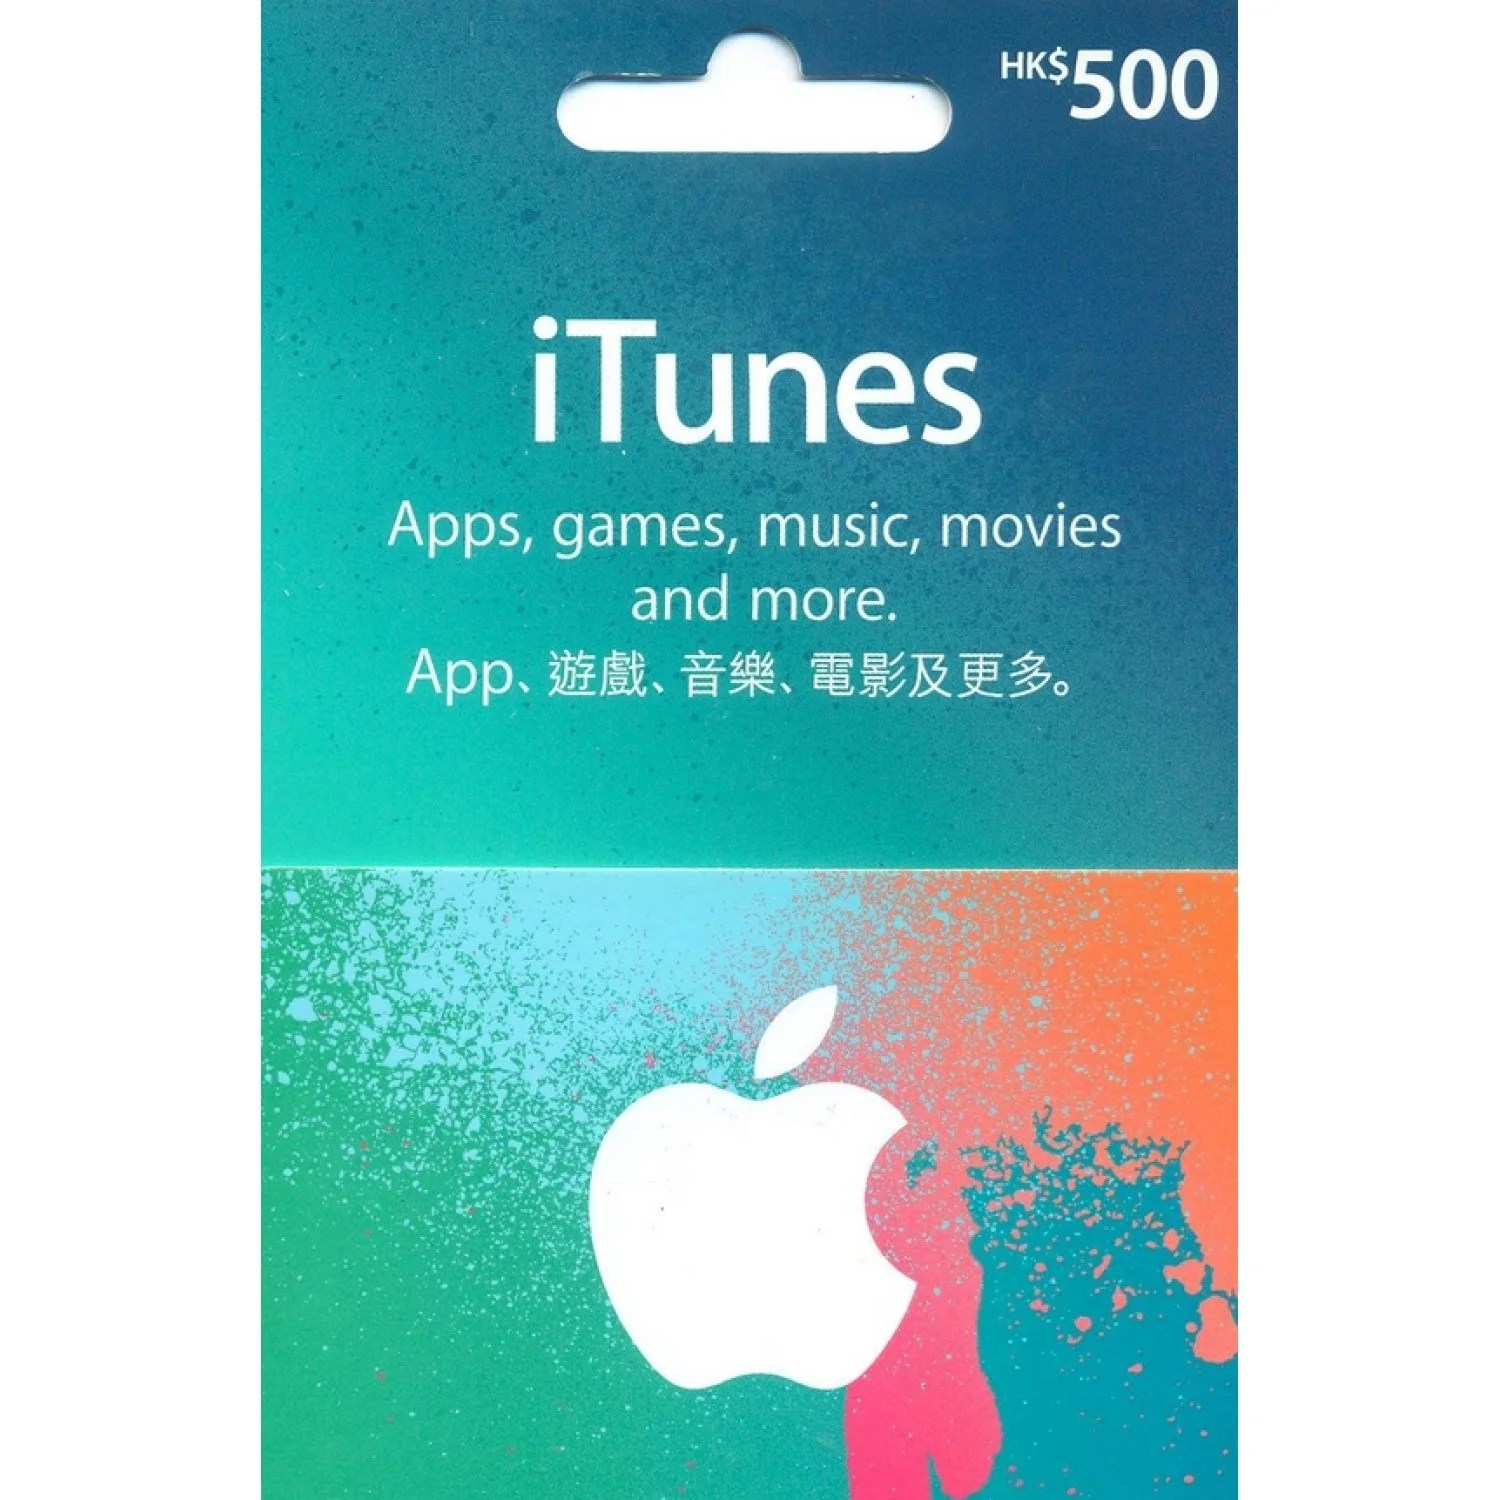 ITunes Card HKD 500 For Hong Kong Accounts Only